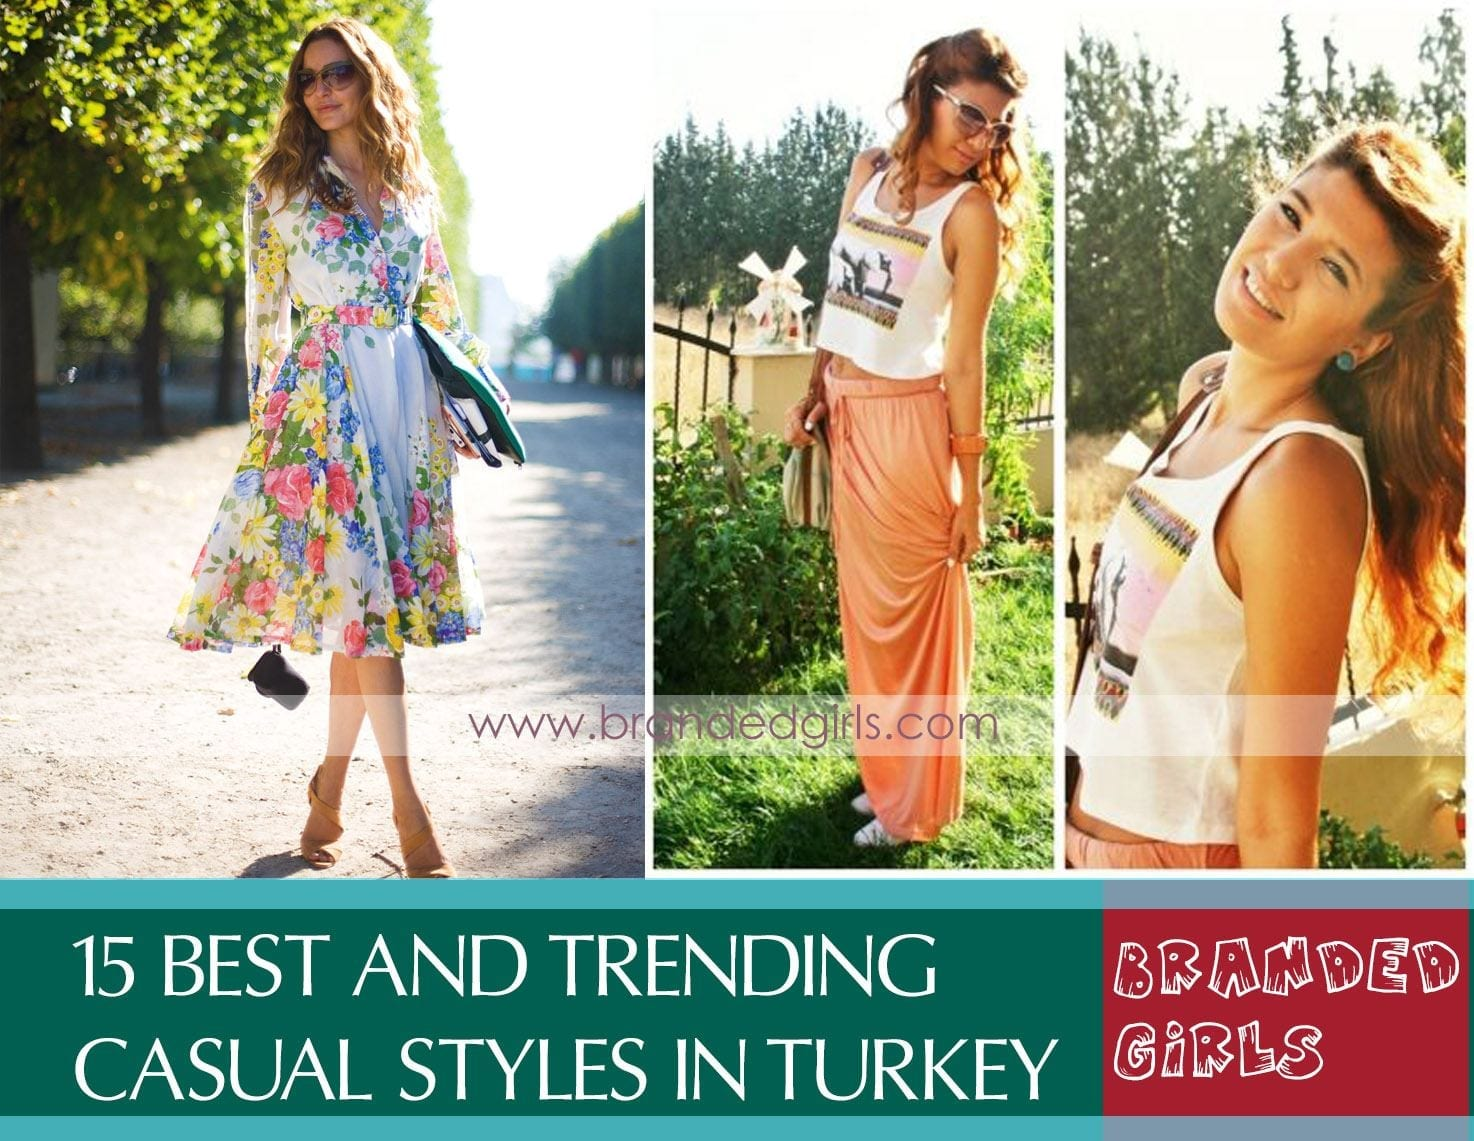 polyvore-sample-5 Turkish Casual Fashion-15 Best and Trending Casual Styles in Turkey